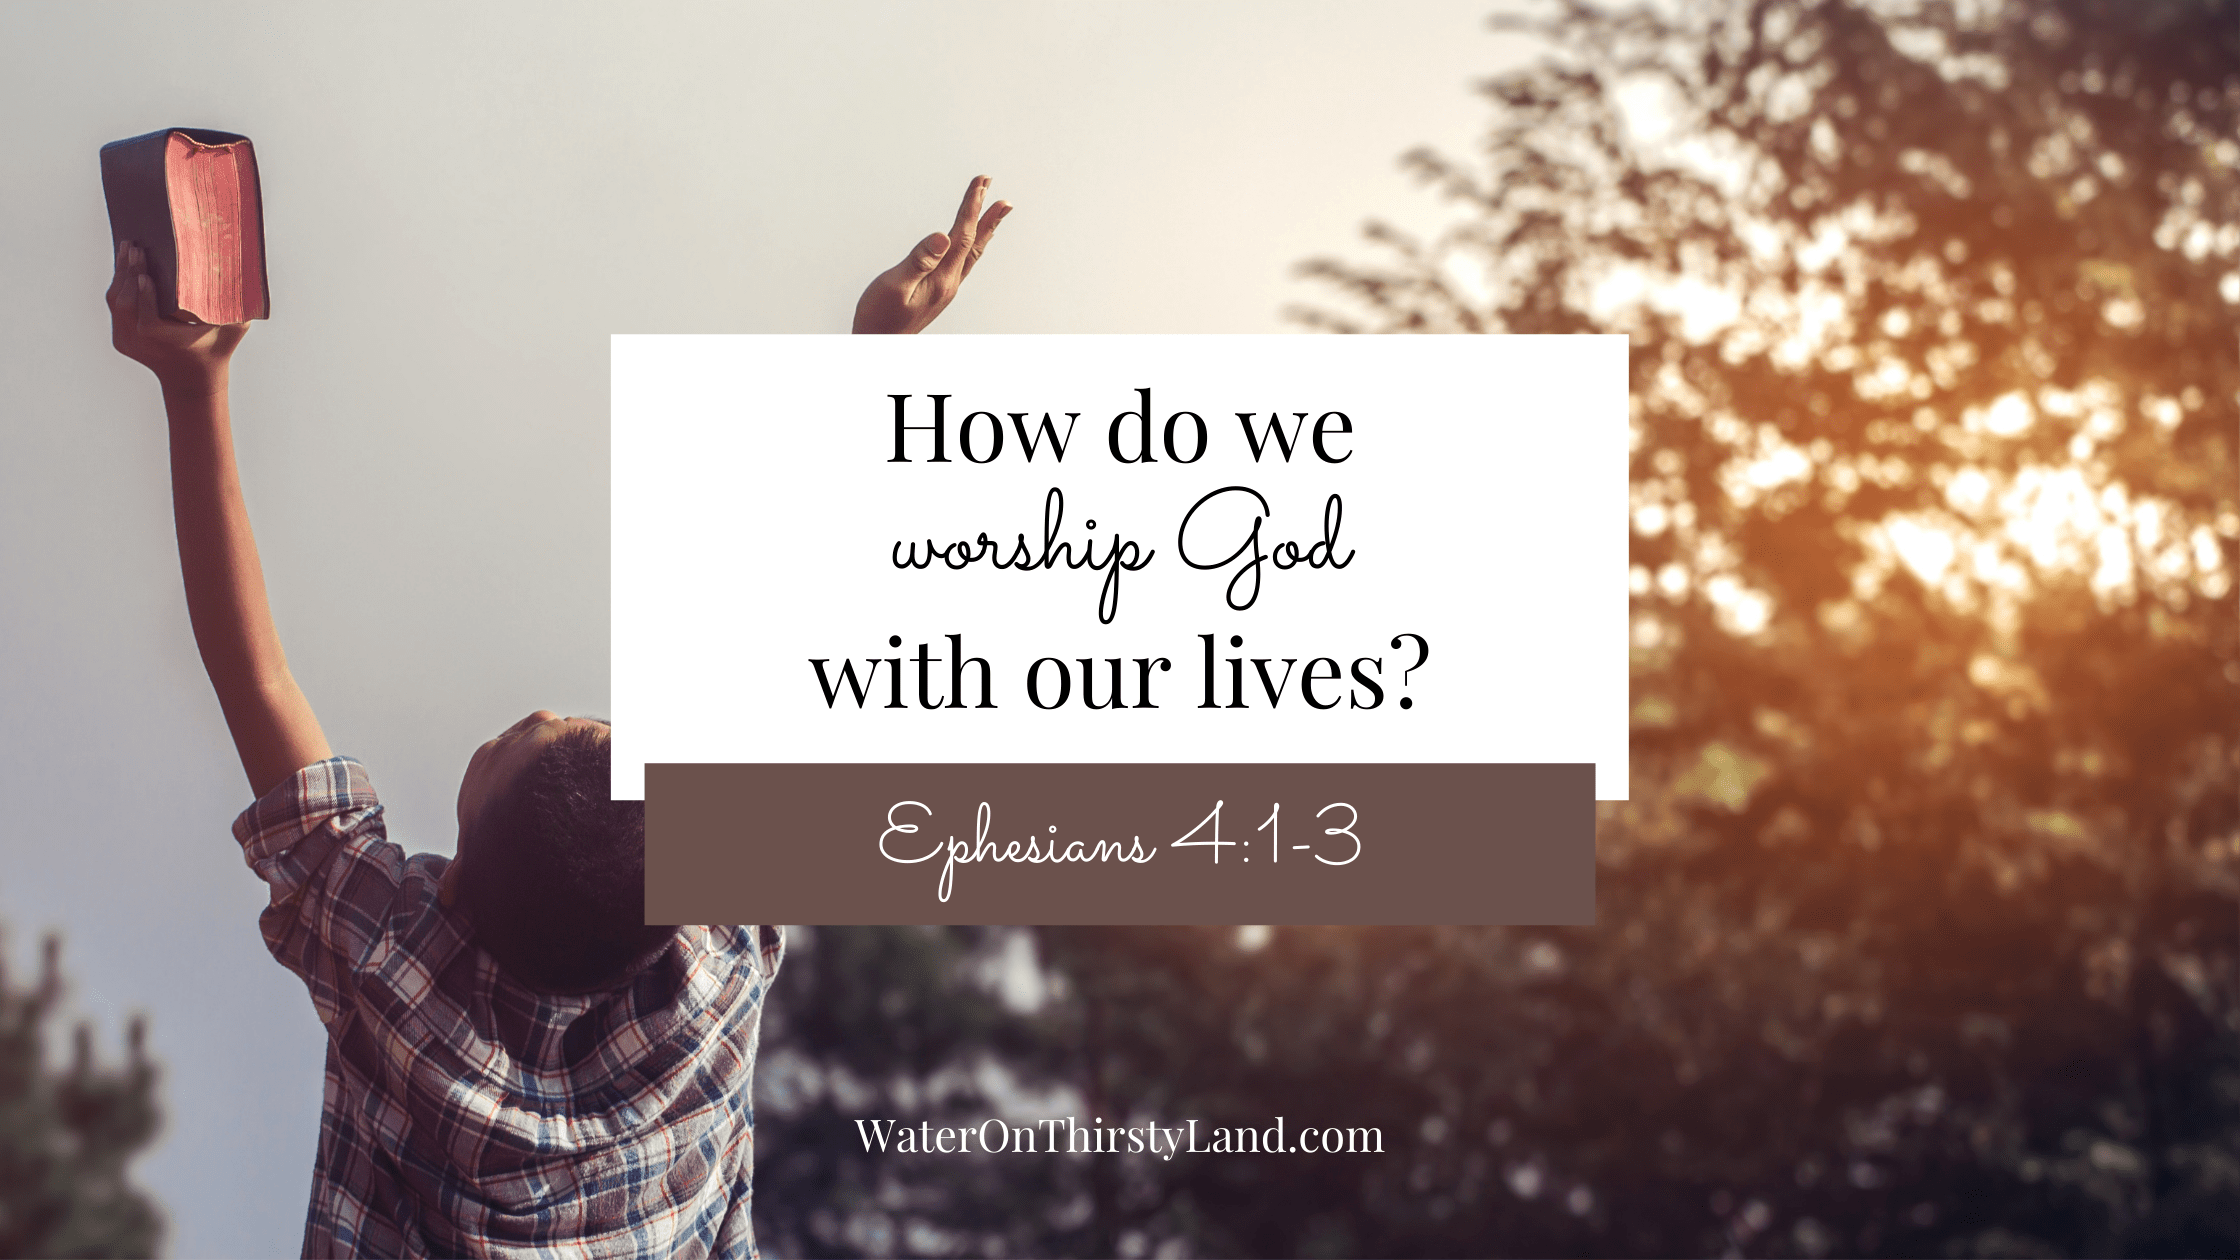 How do we worship God with our lives?